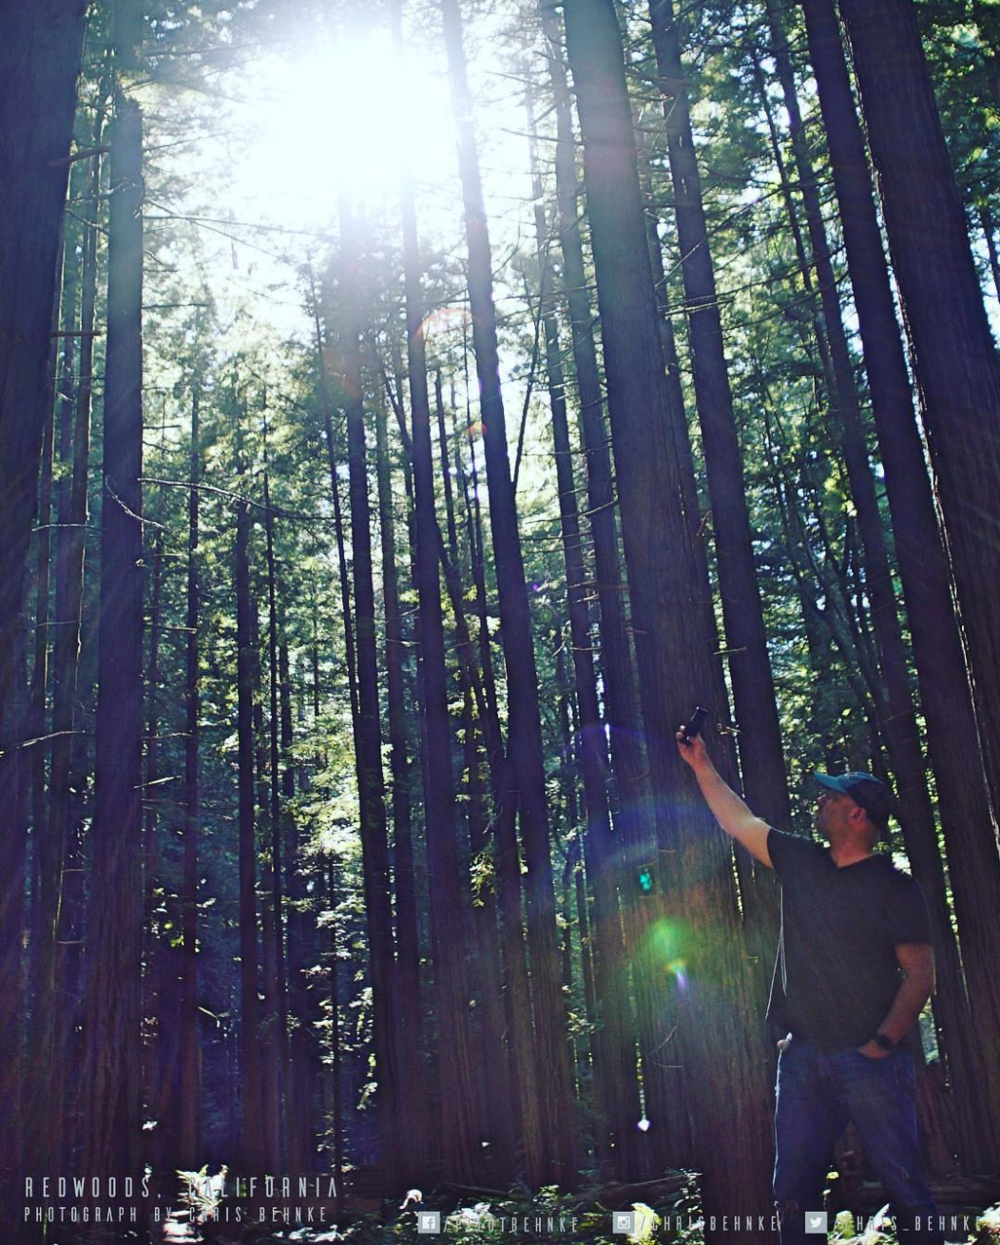 One of my favorite places: Redwoods California